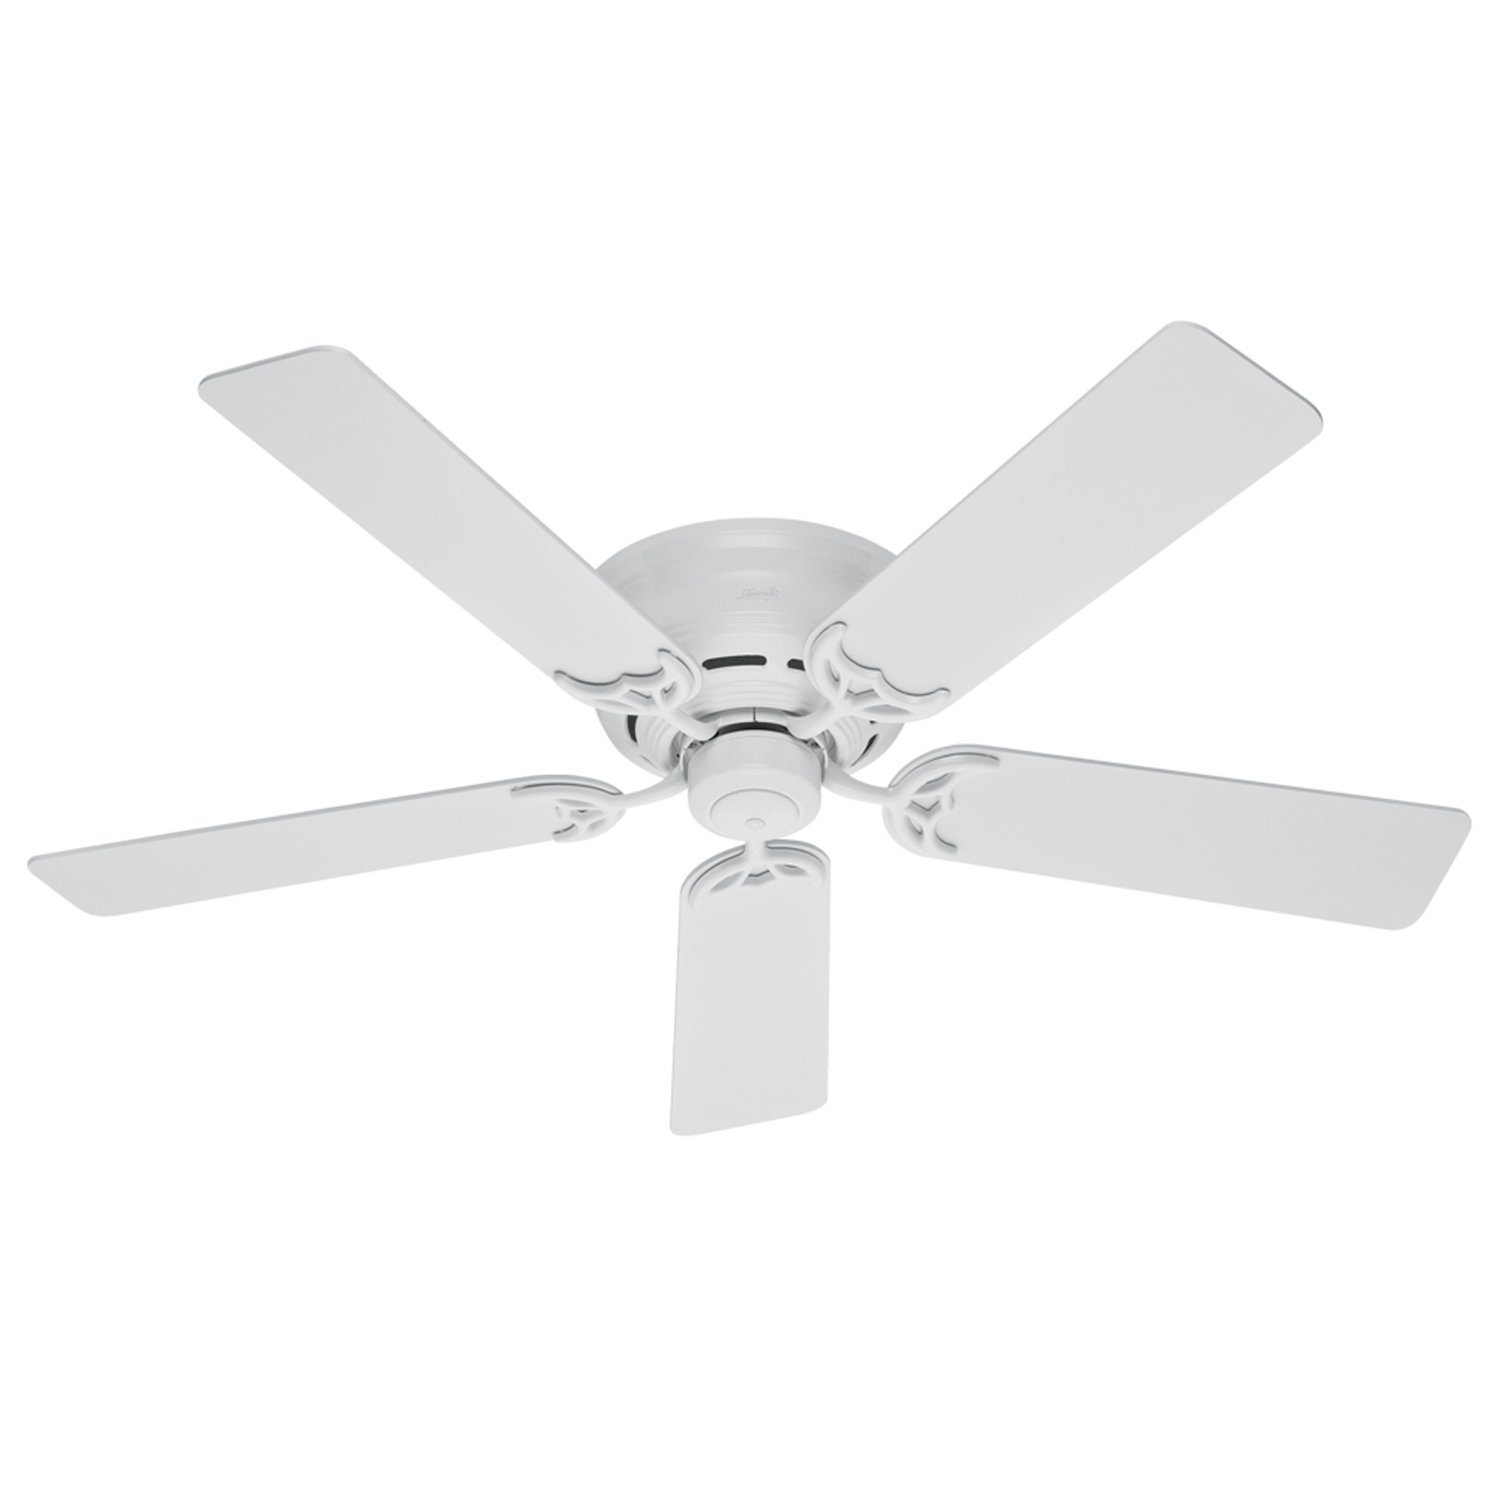 5 Best Low Profile Ceiling Fans